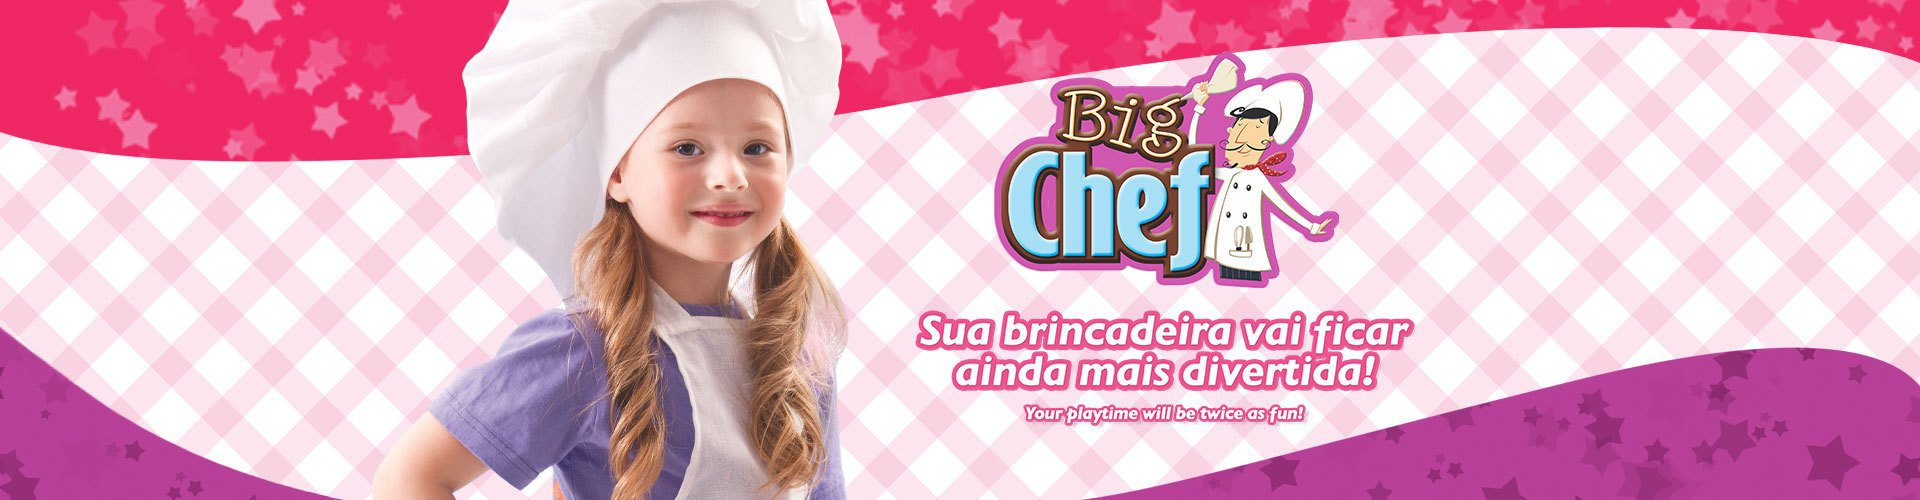 Destaque big chef